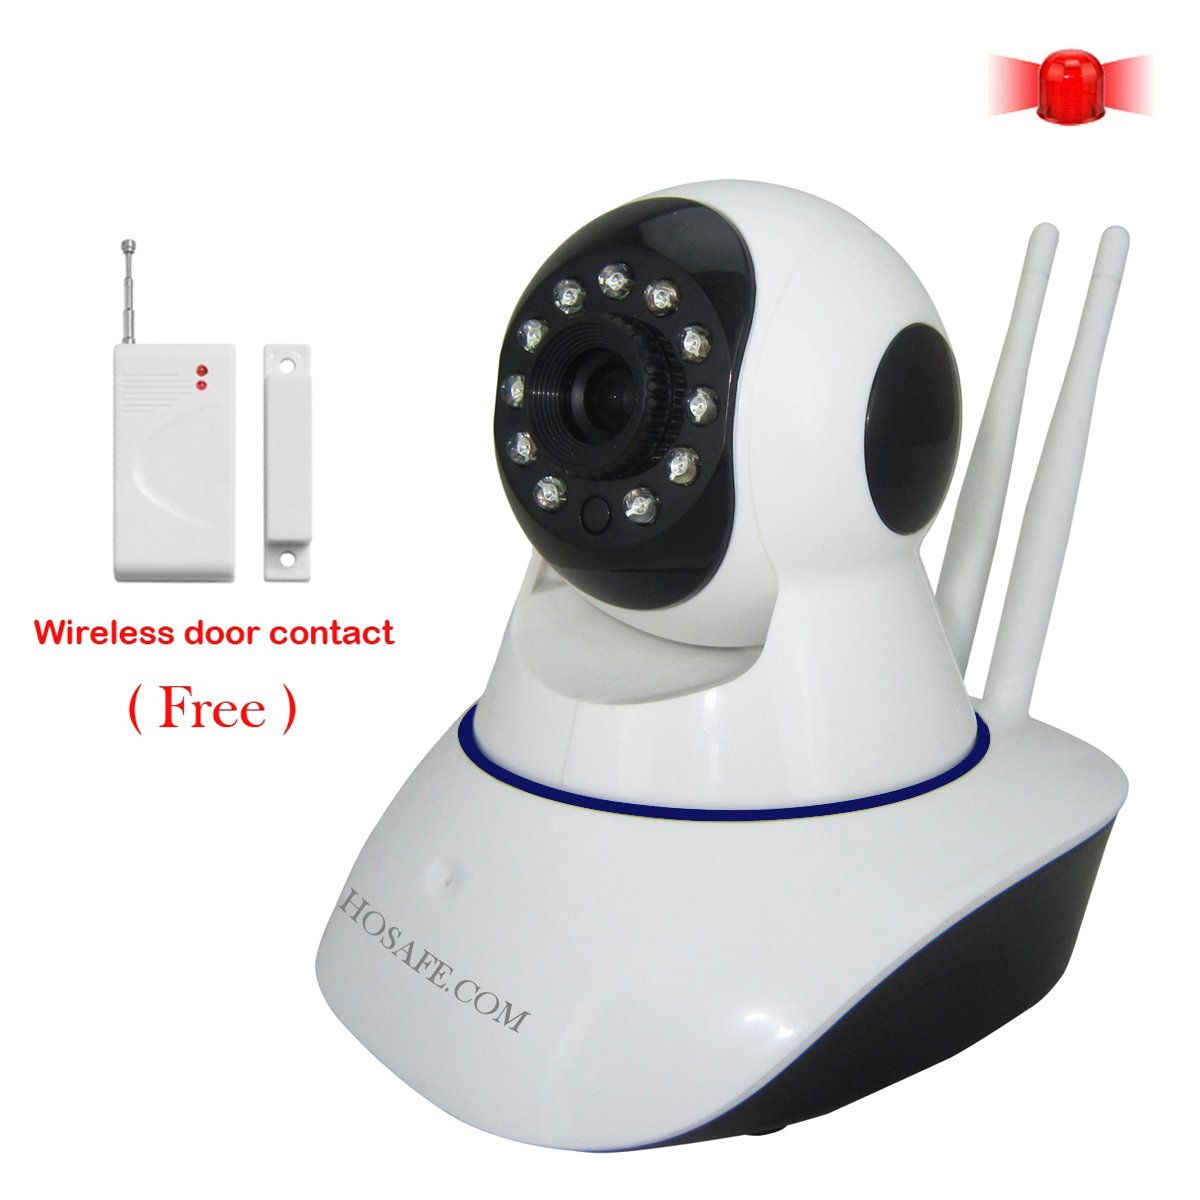 Amazon.com : HOSAFE 1MW9 Smart Home Security System W/ Door/Window ...